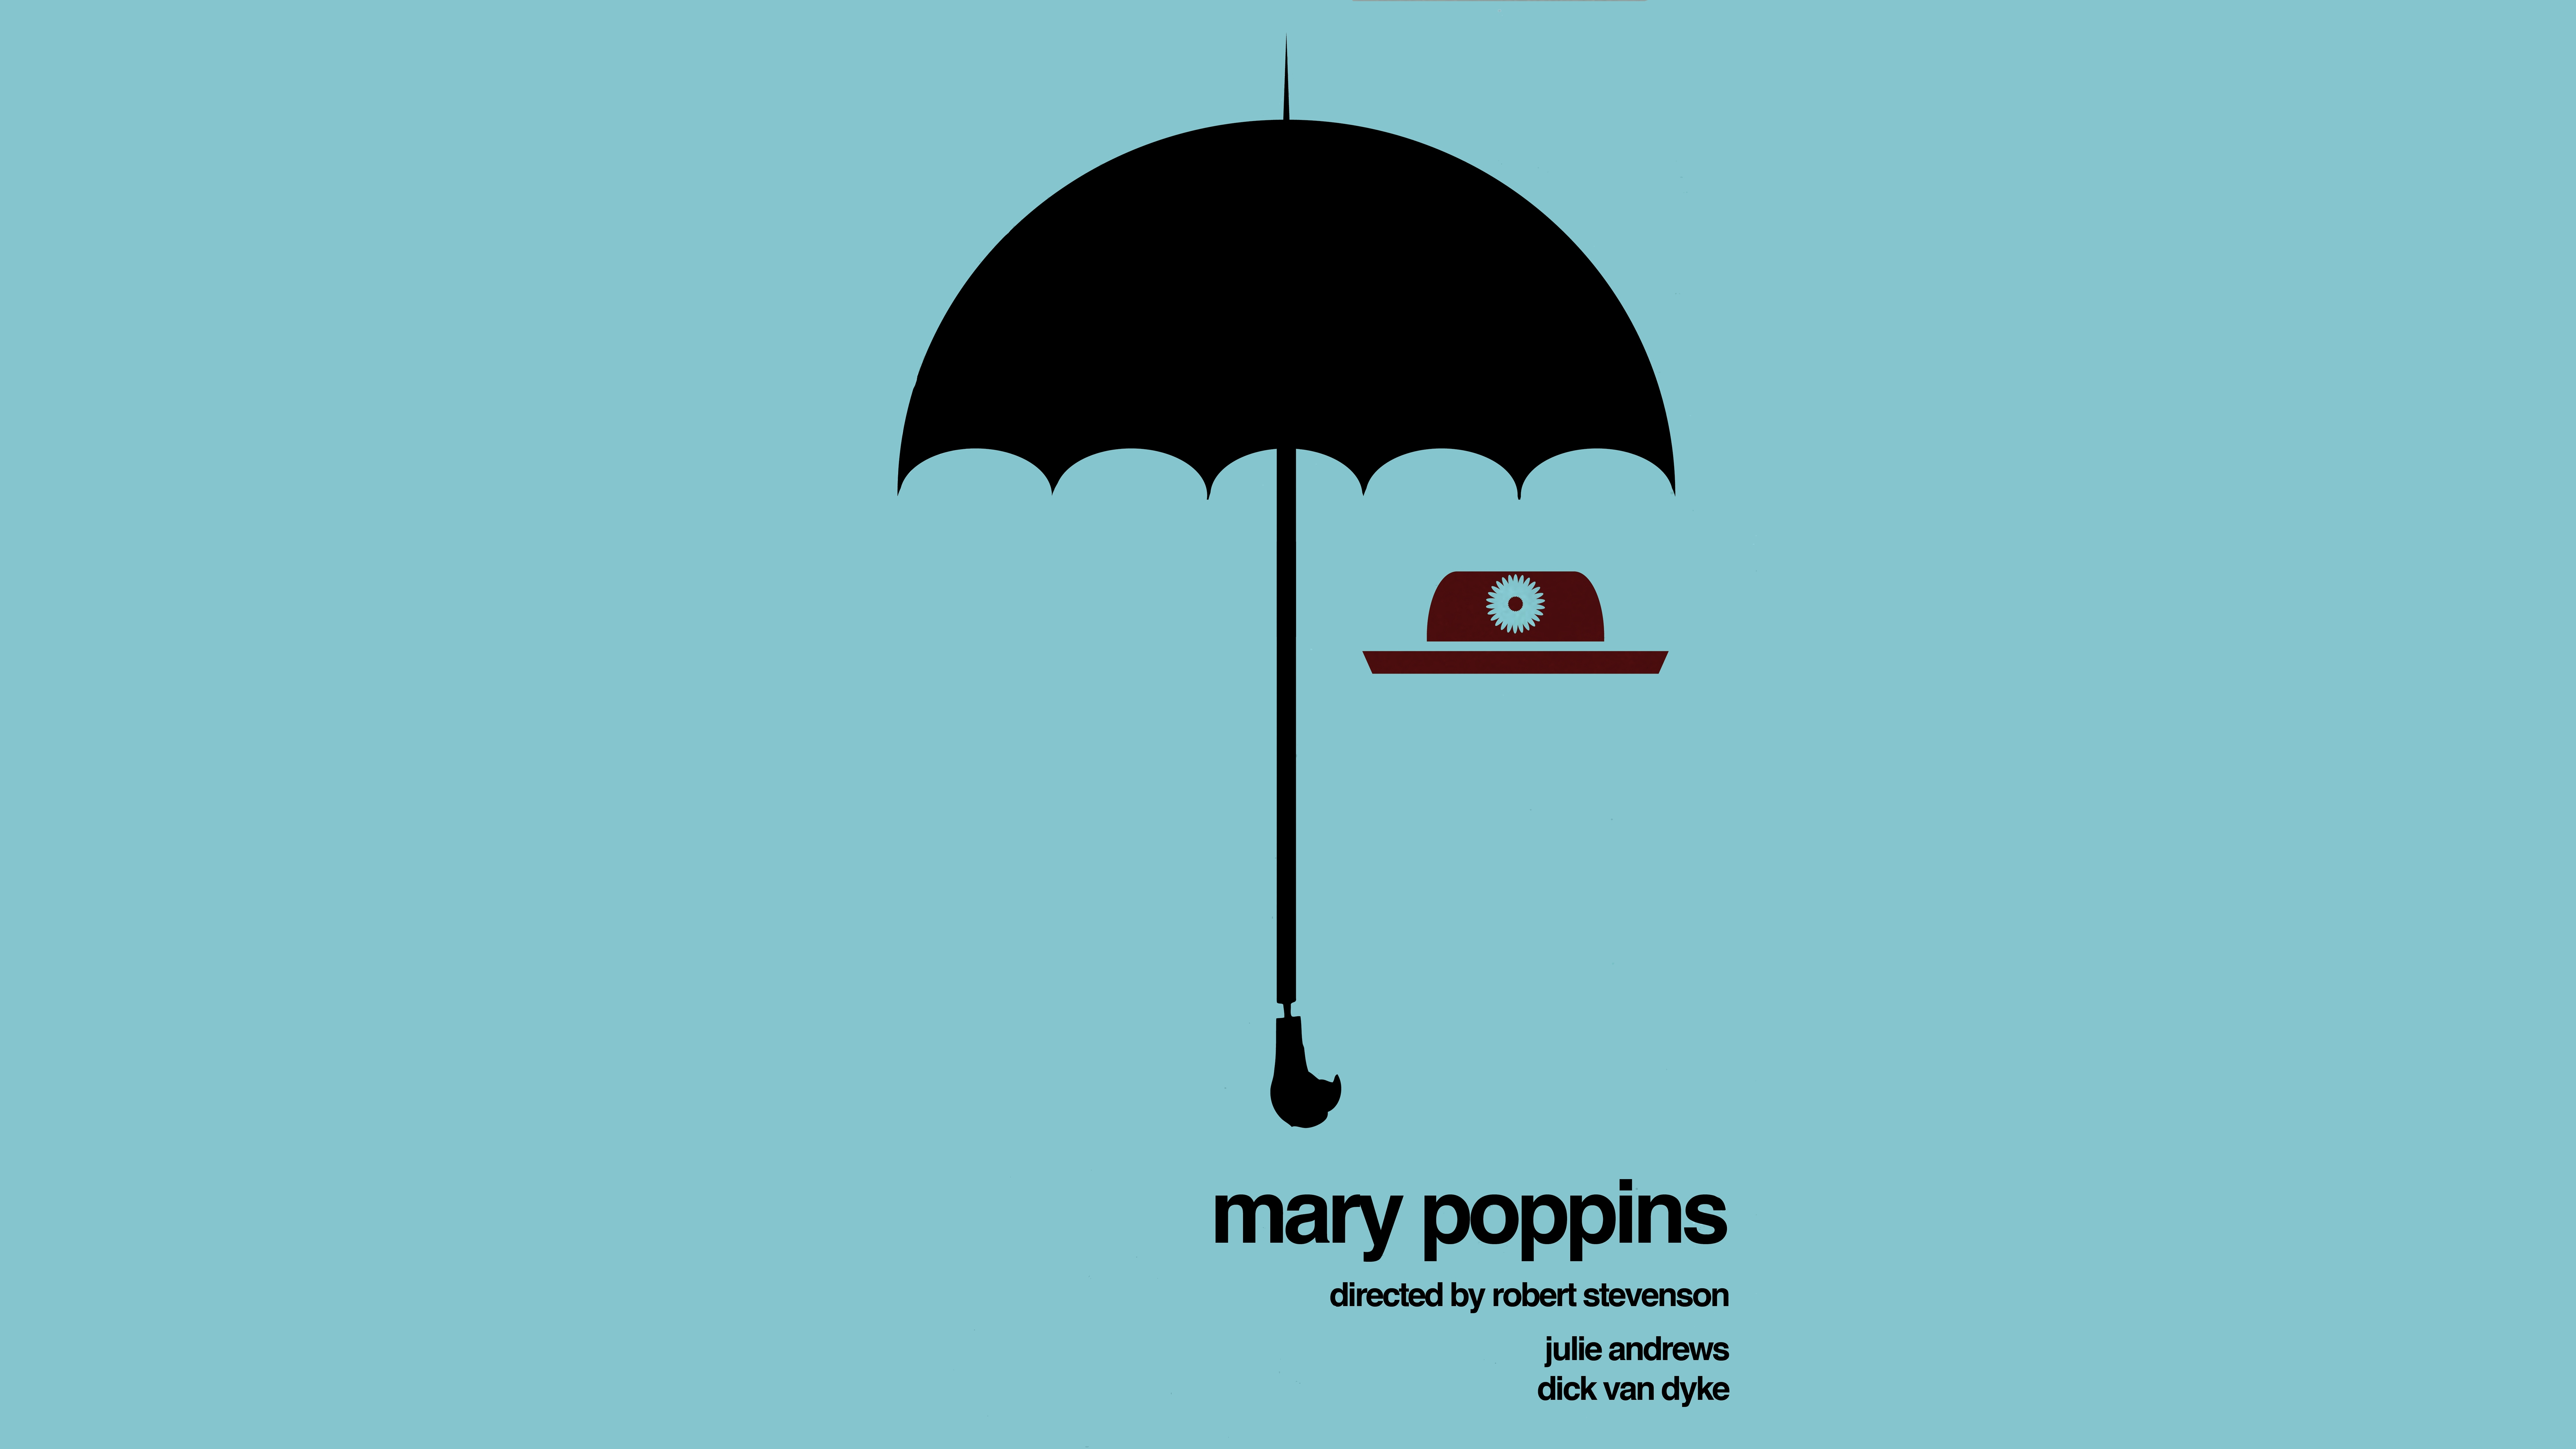 Mary poppins 8k ultra hd wallpaper background image - Mary poppins wallpaper ...